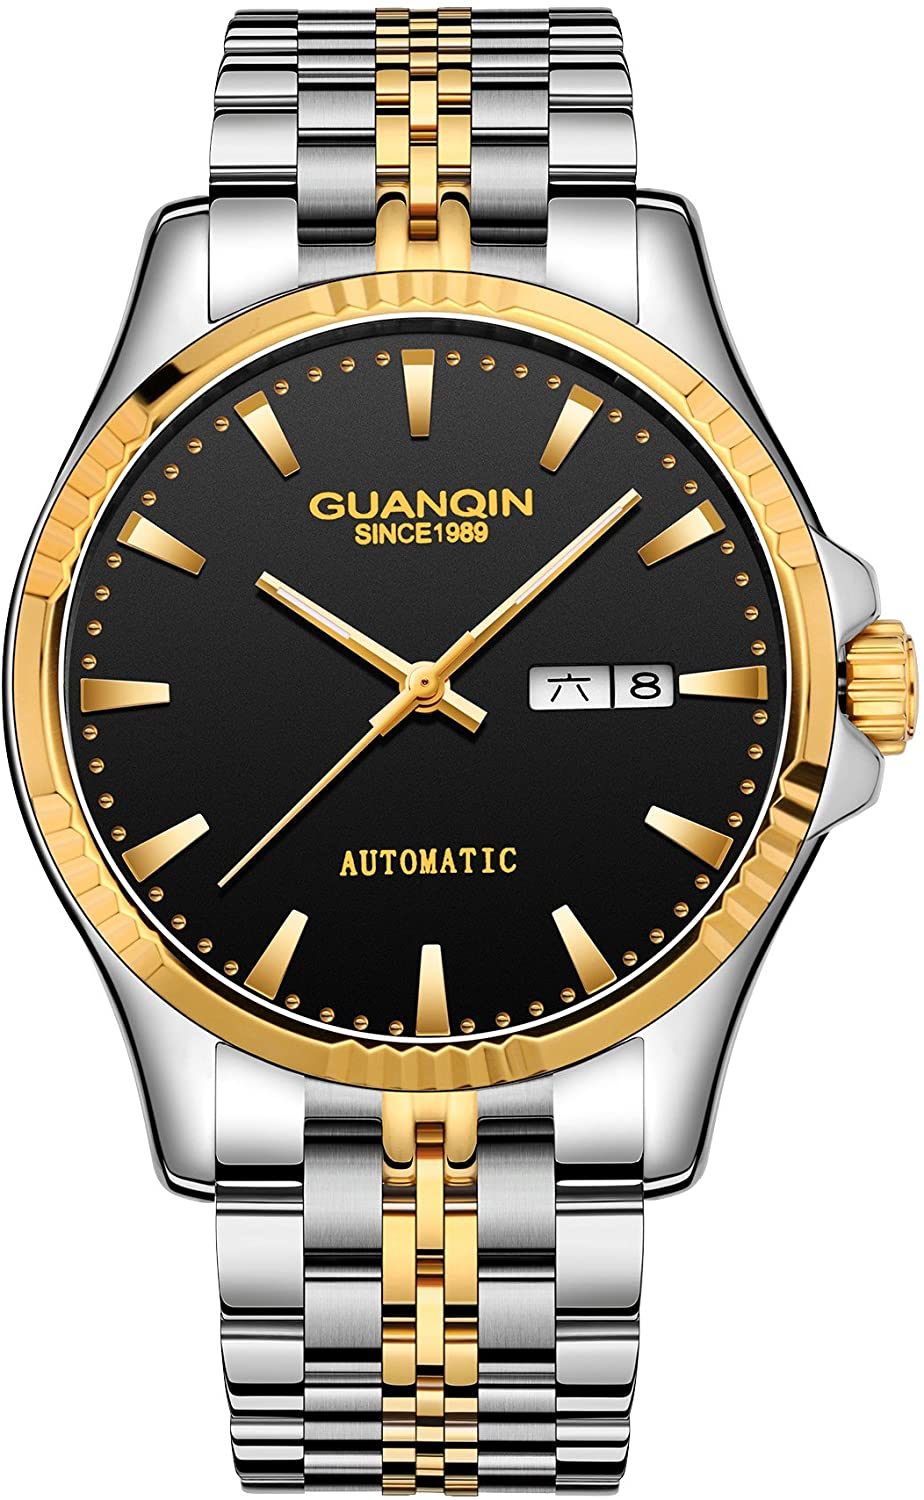 Guanqin Men's Day Date Watches Analog Automatic Self Winding Mechanical Wrist Watch with Stainless Steel Bracelet